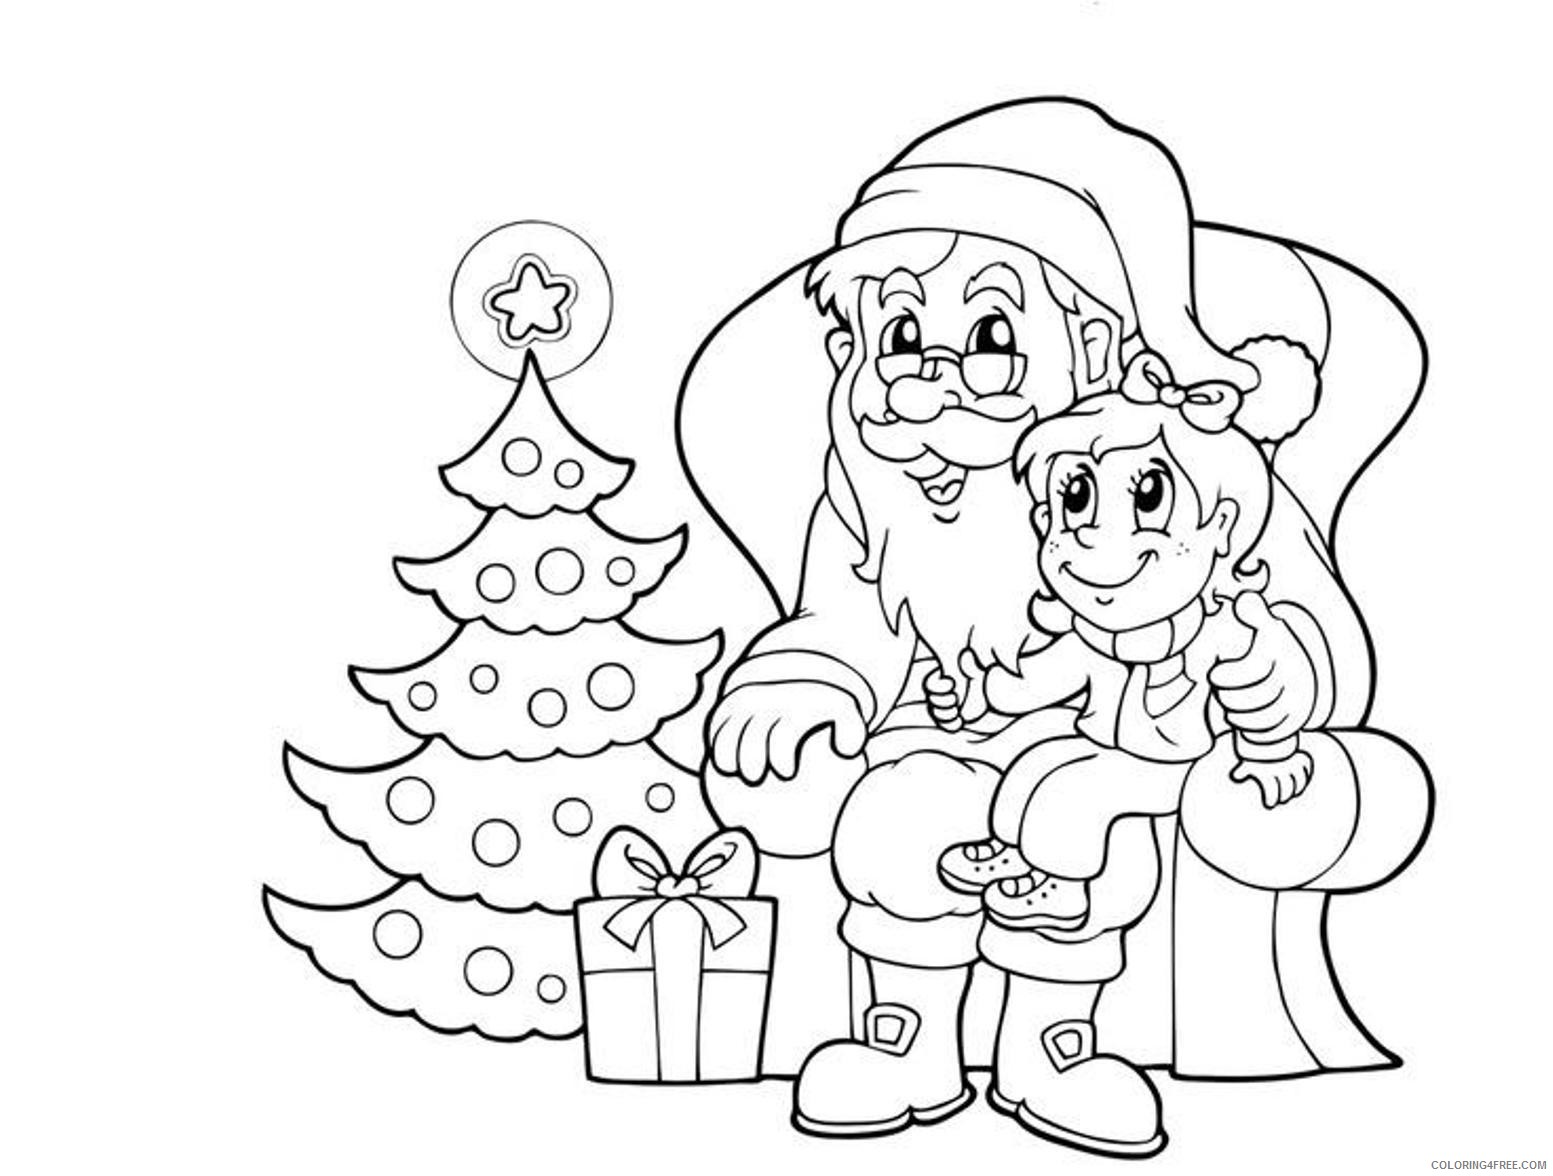 santa claus coloring pages storytelling to kids Coloring4free